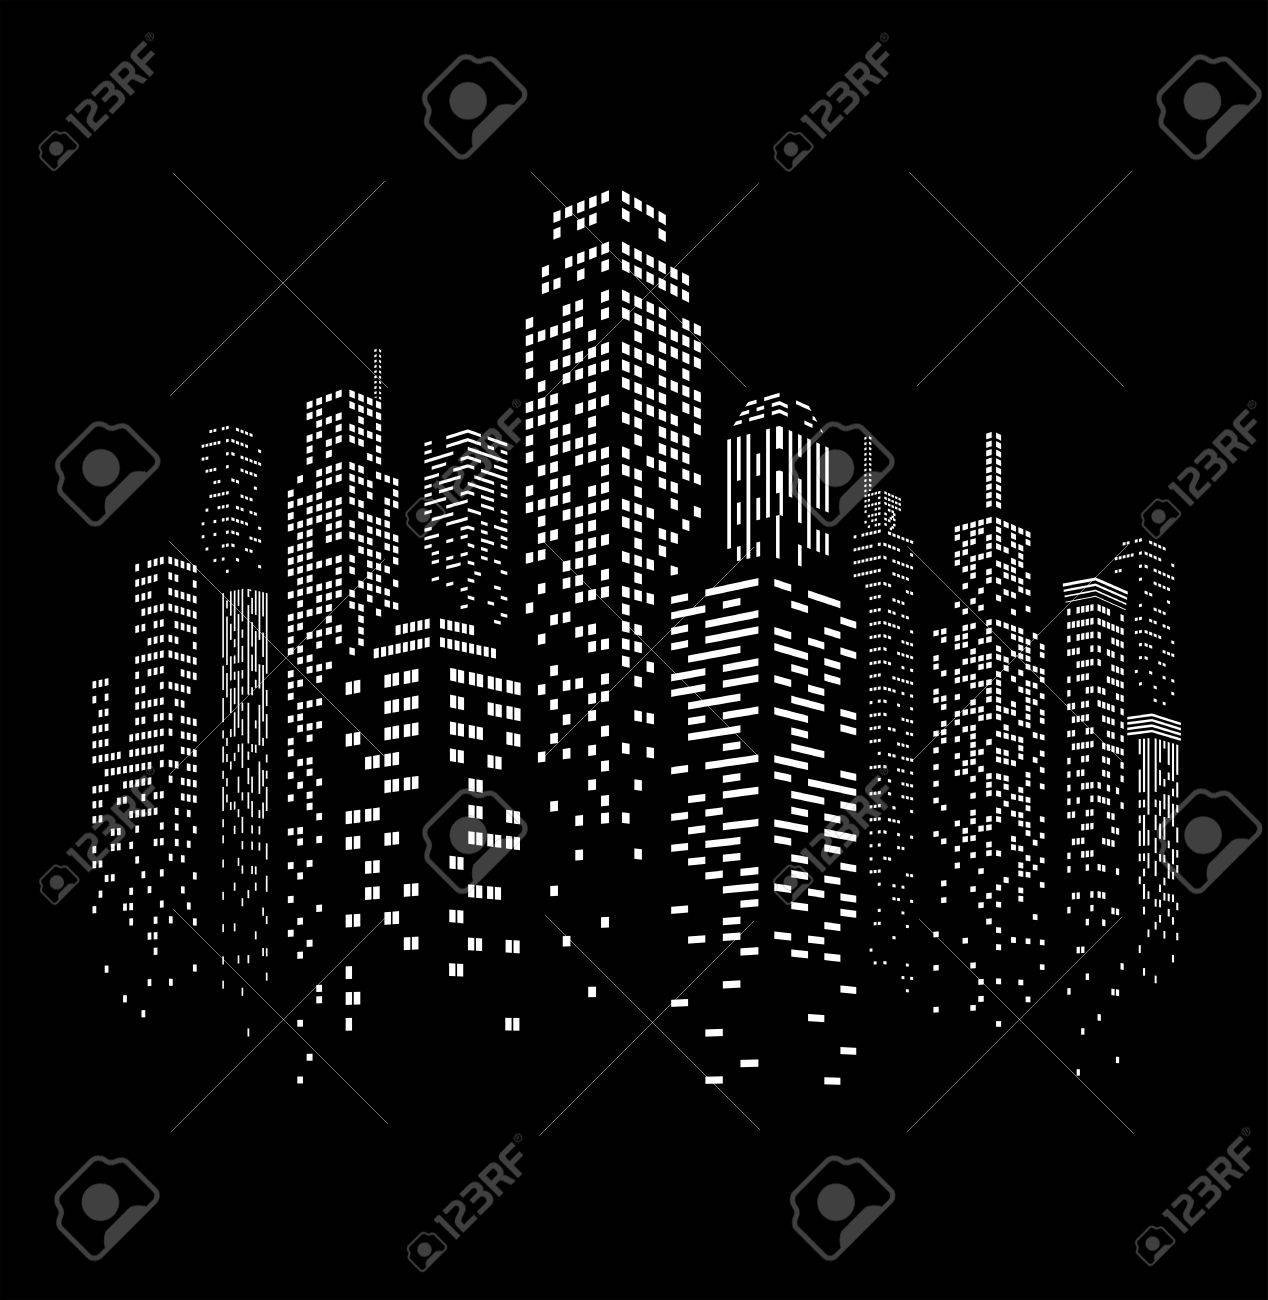 Vector illustration of black and white skyscrapers, with black buildings and white windows. All windows shapes are present so you can easily edit window colors. - 59832403